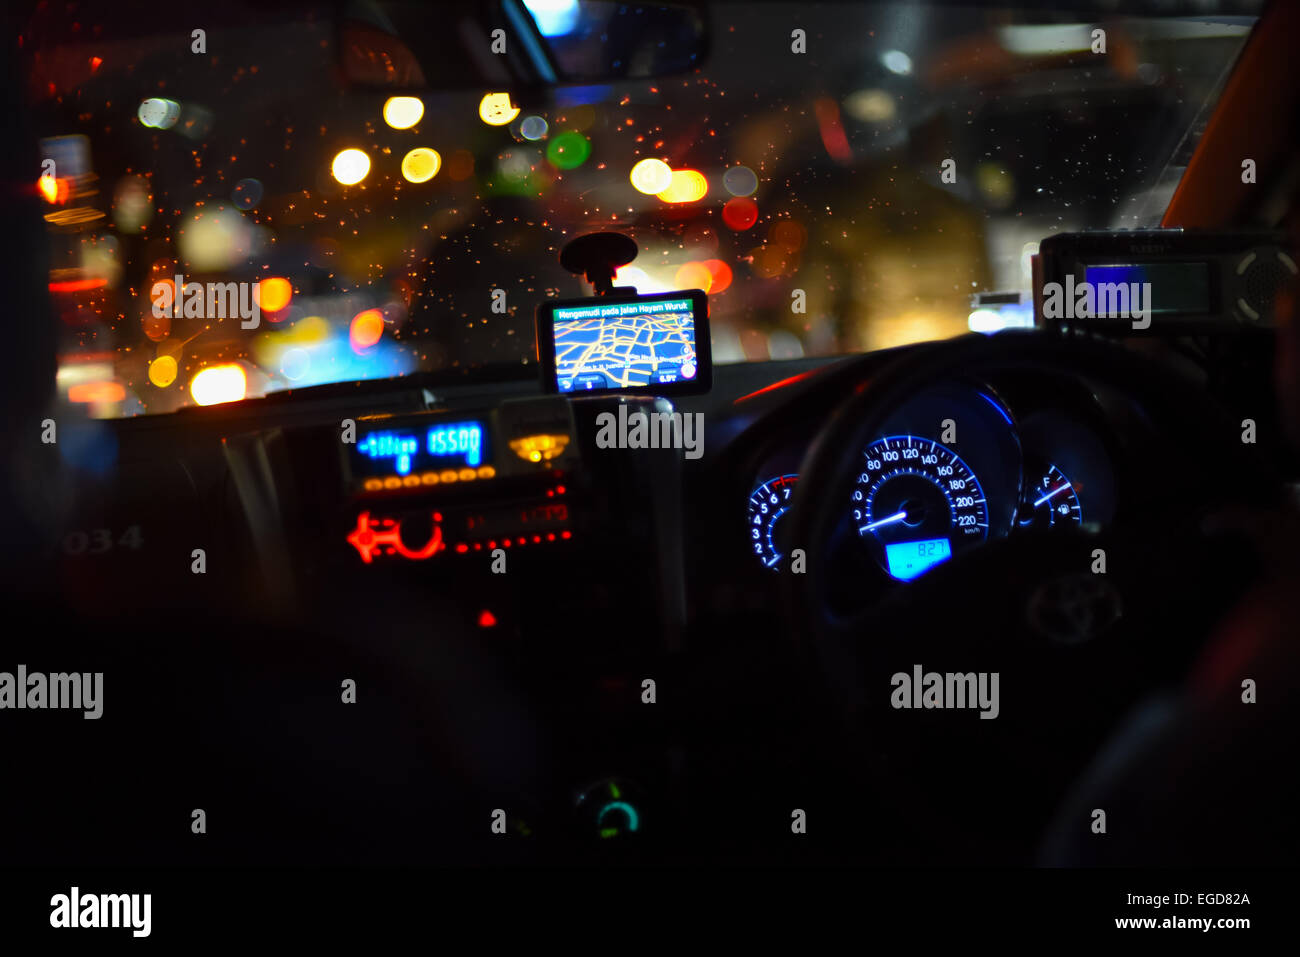 dashboard of a taxi in night traffic jakarta stock photo 78967682 alamy. Black Bedroom Furniture Sets. Home Design Ideas